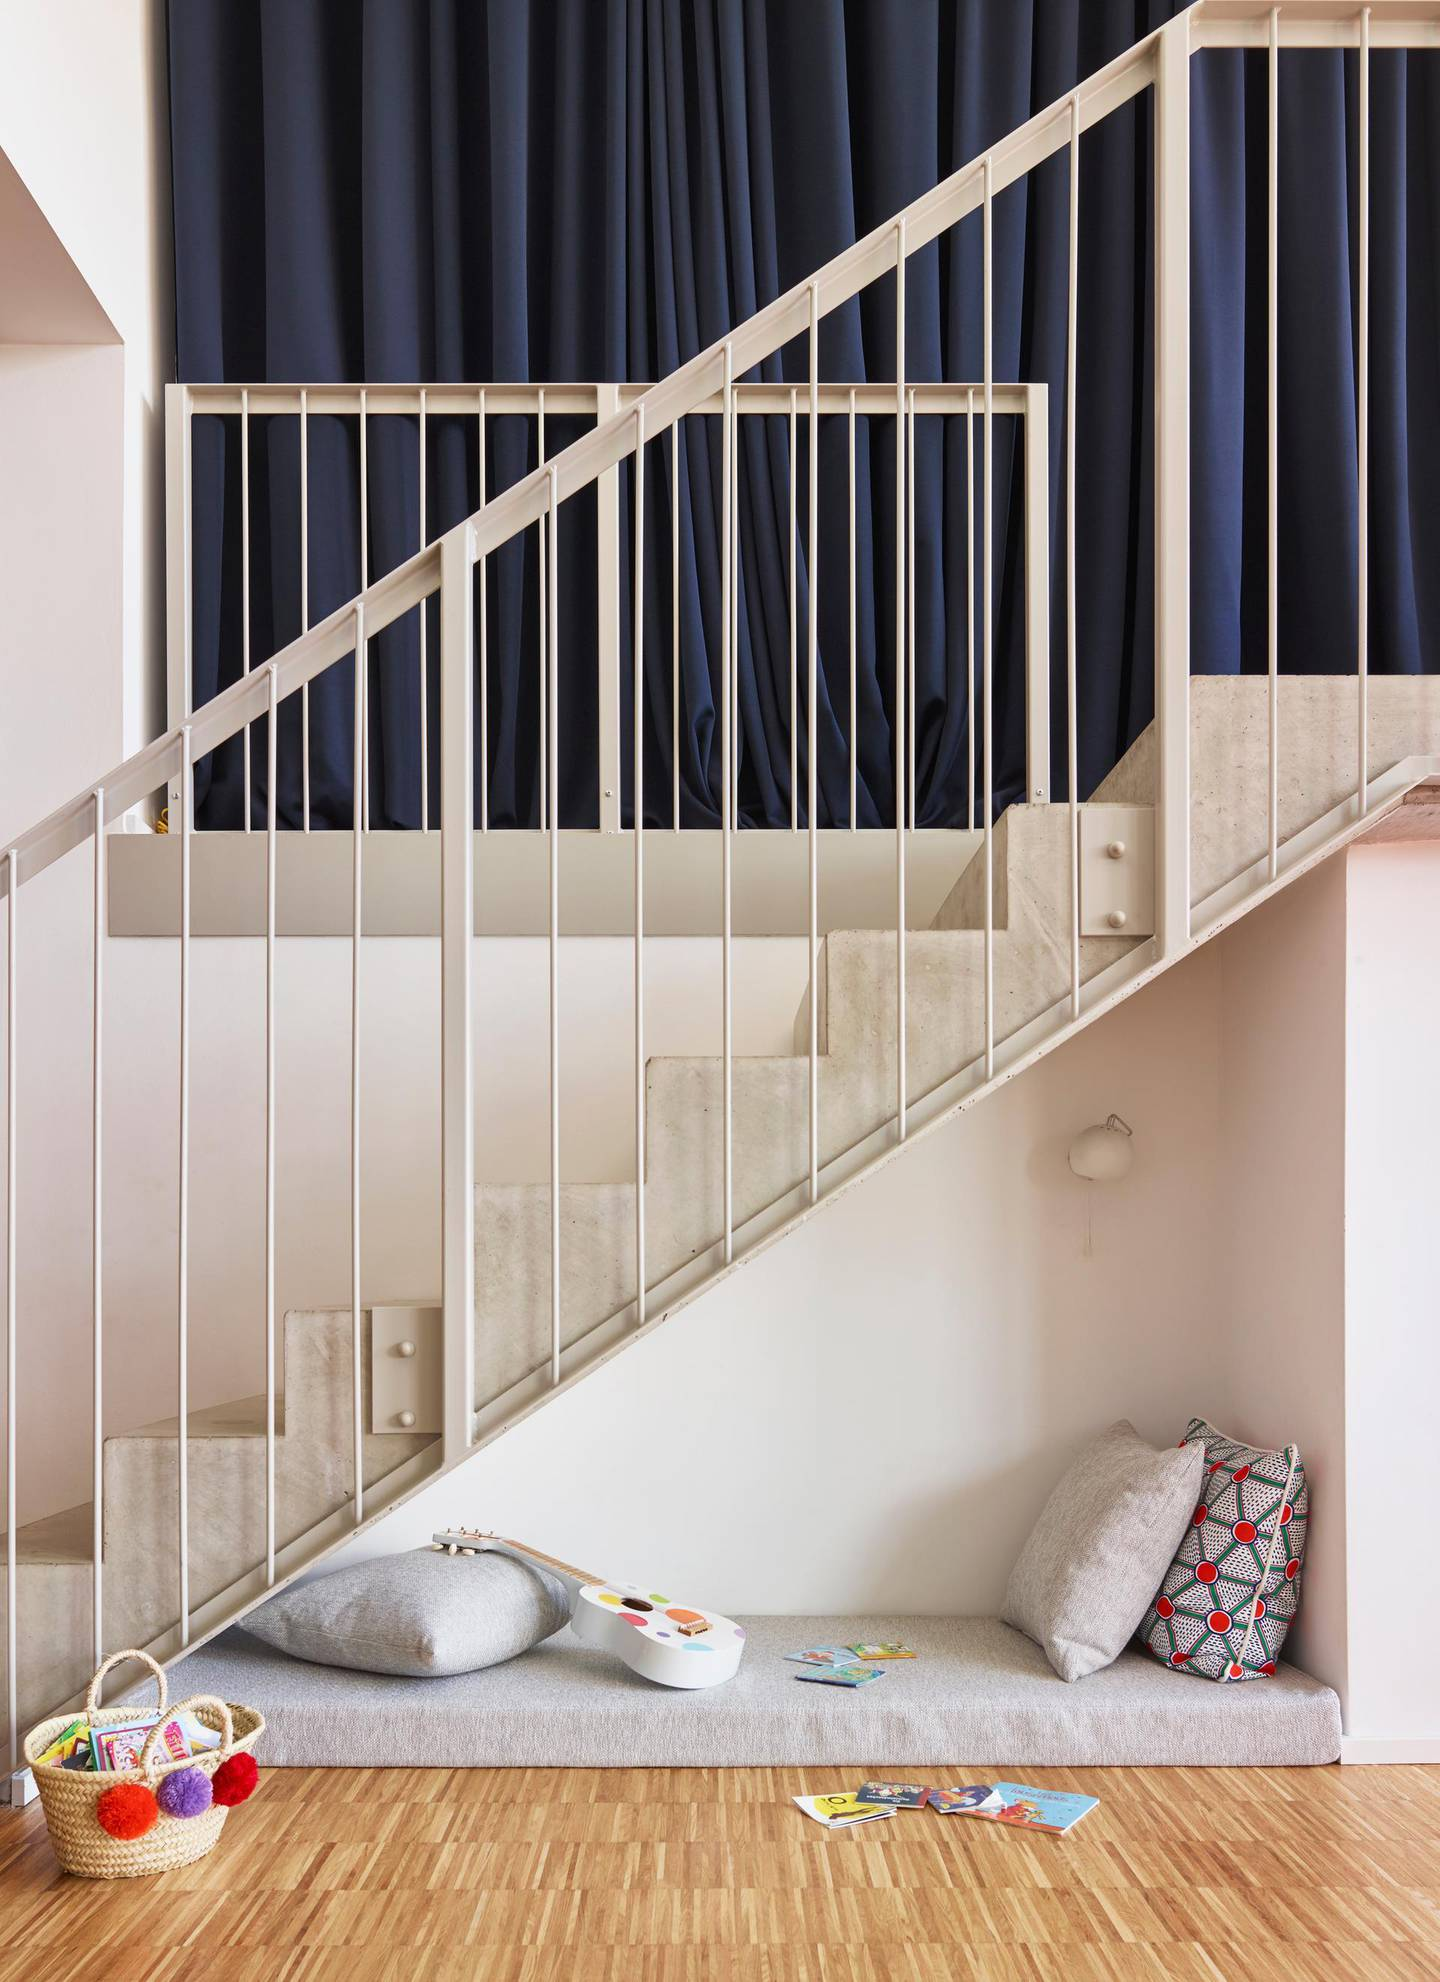 Cushions and toy guitar under steps at home. Getty Images